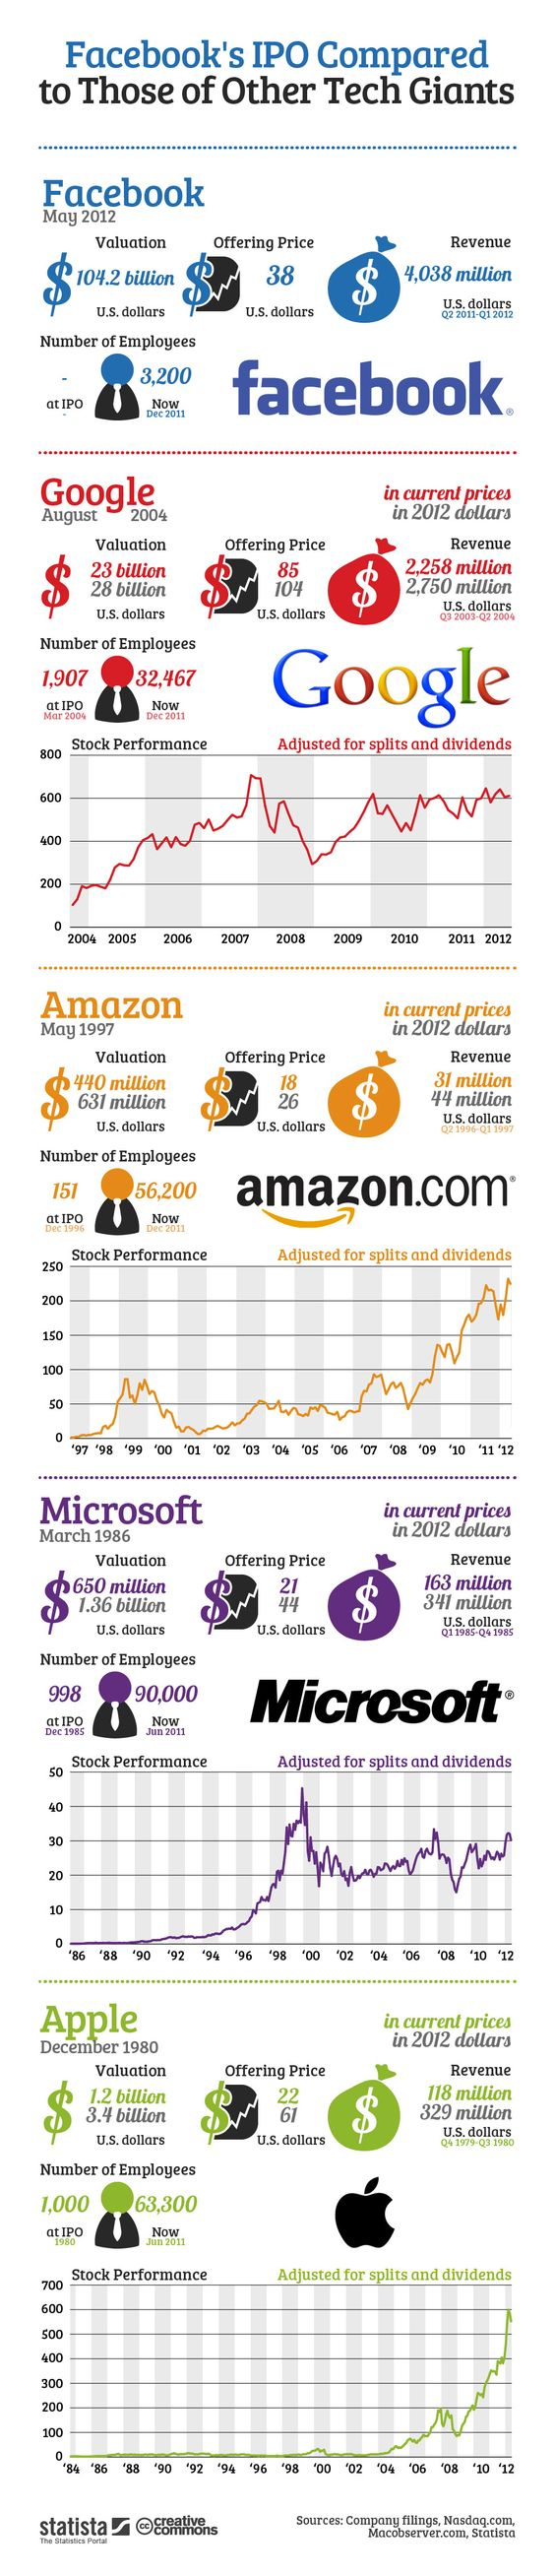 Facebook's IPO Compared to Those of Other Tech Giants